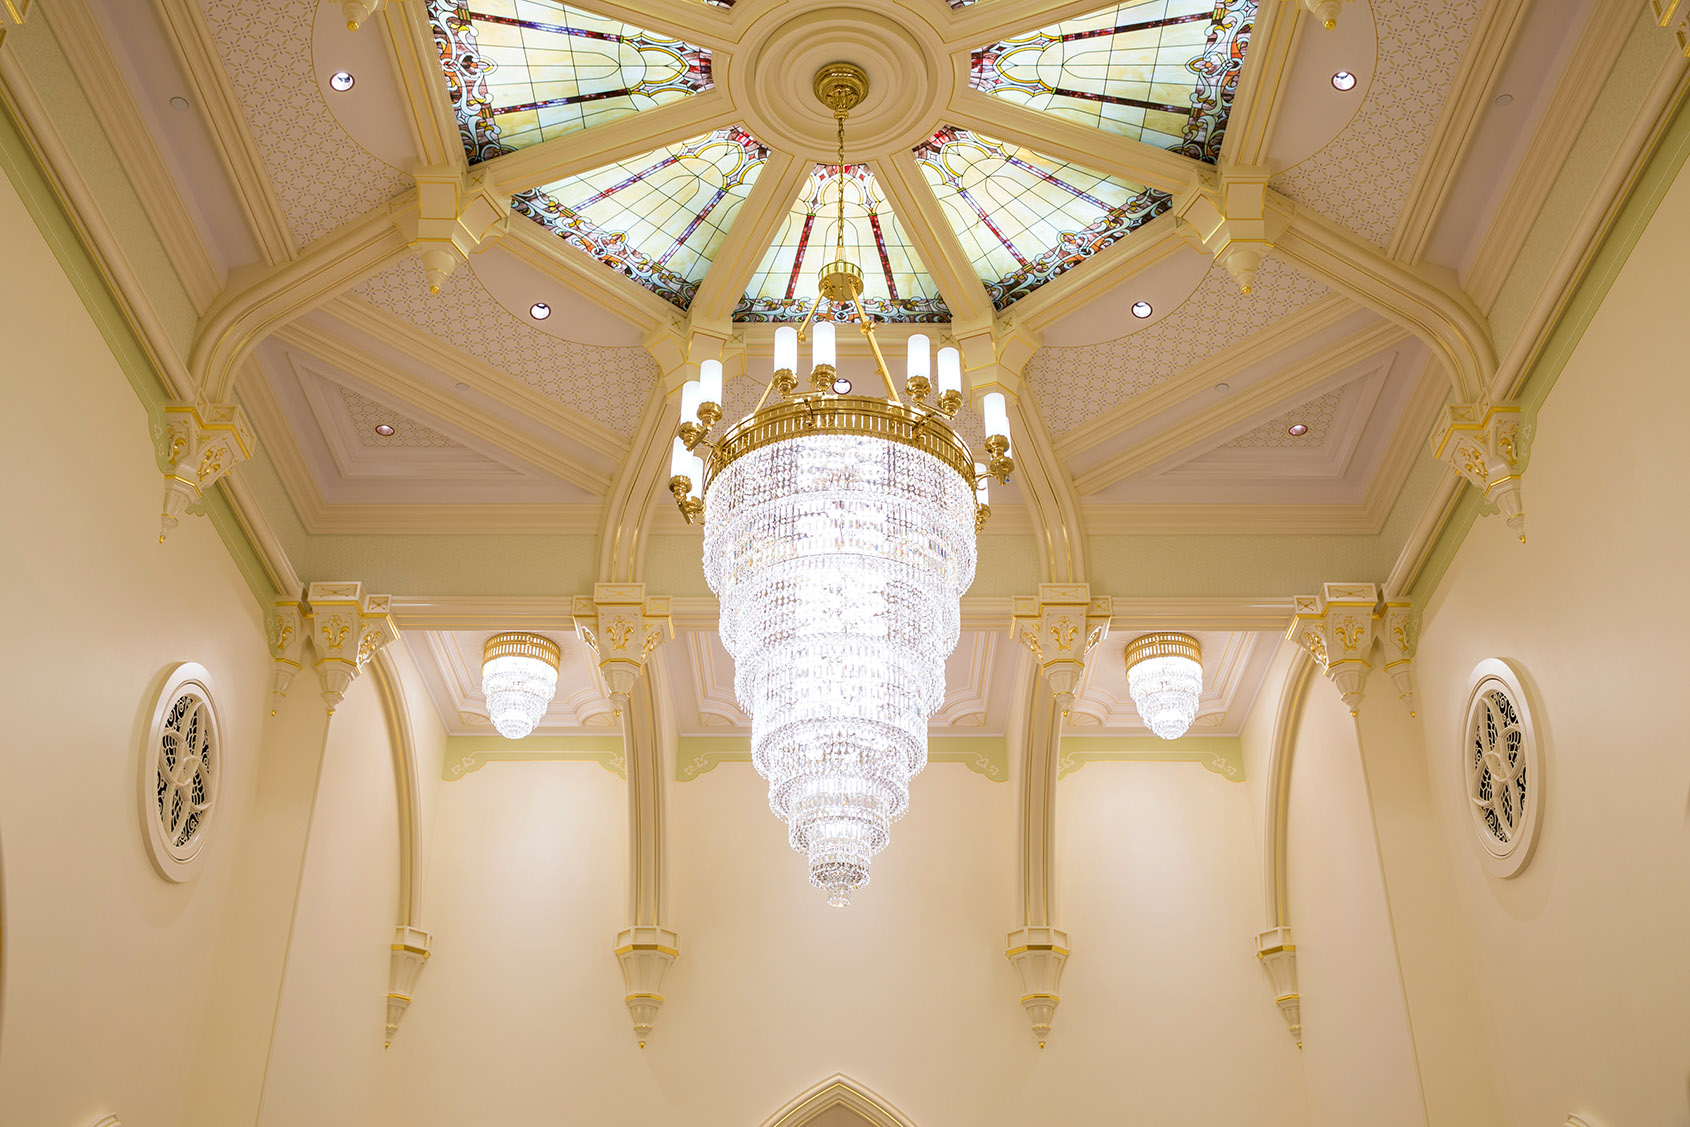 Provo City Center Temple Interior Photograph from Intellectual Reserve.